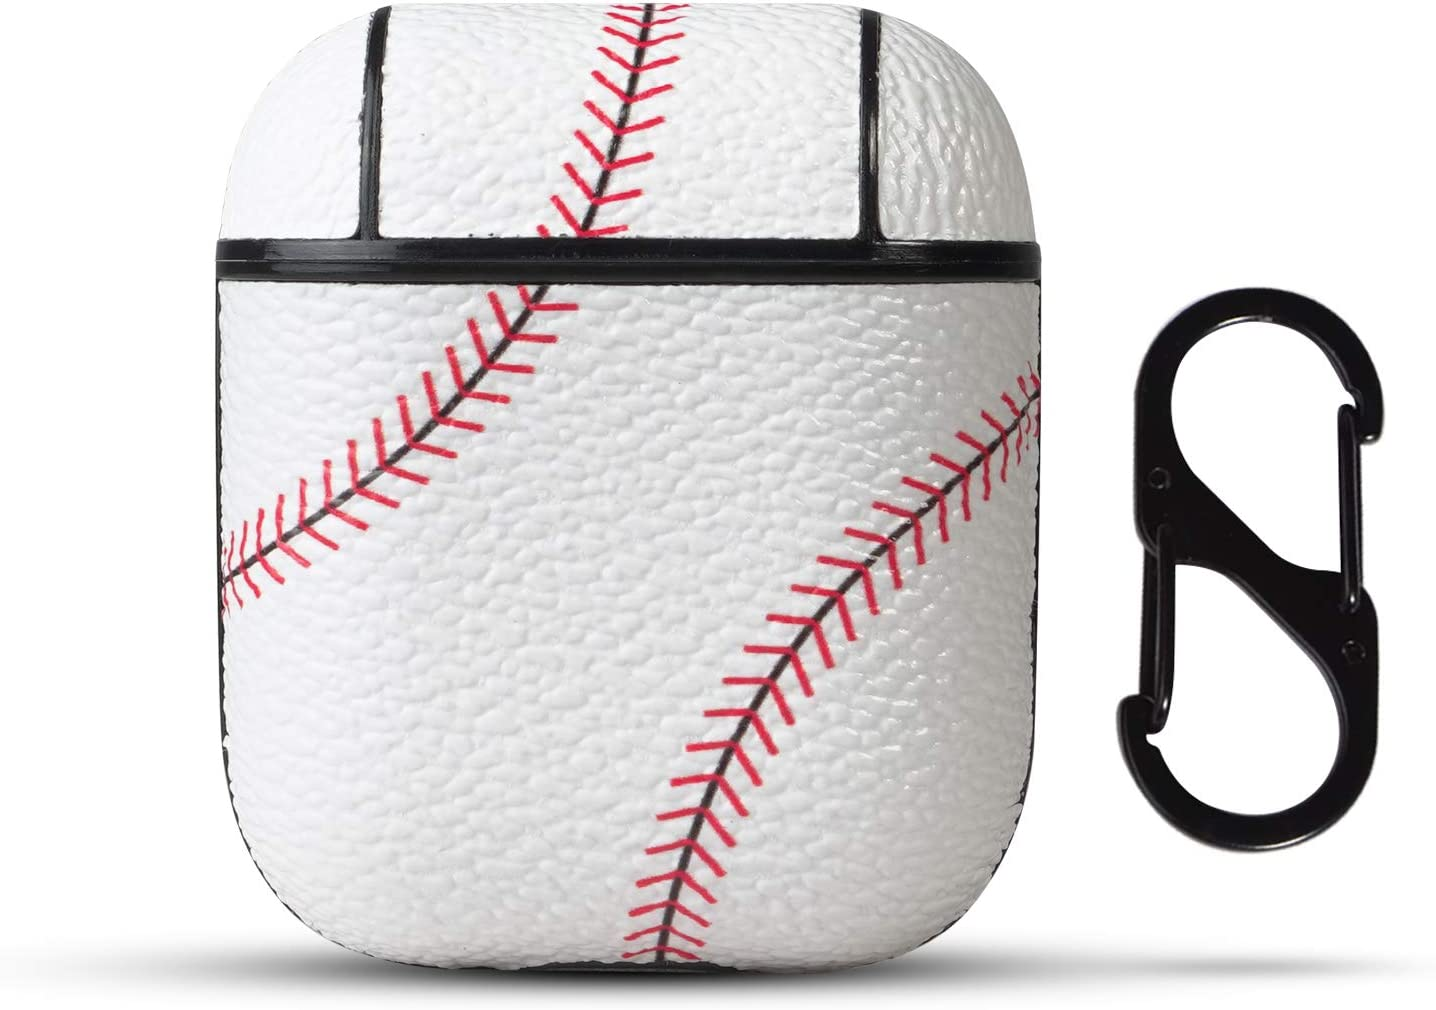 HIDAHE Case for Airpods 2 Case, Apple 1 Airpods Case Cover, Cute Baseball Protective Cover with Keychain Case Compatible with Airpods 1/2, Cool Baseball